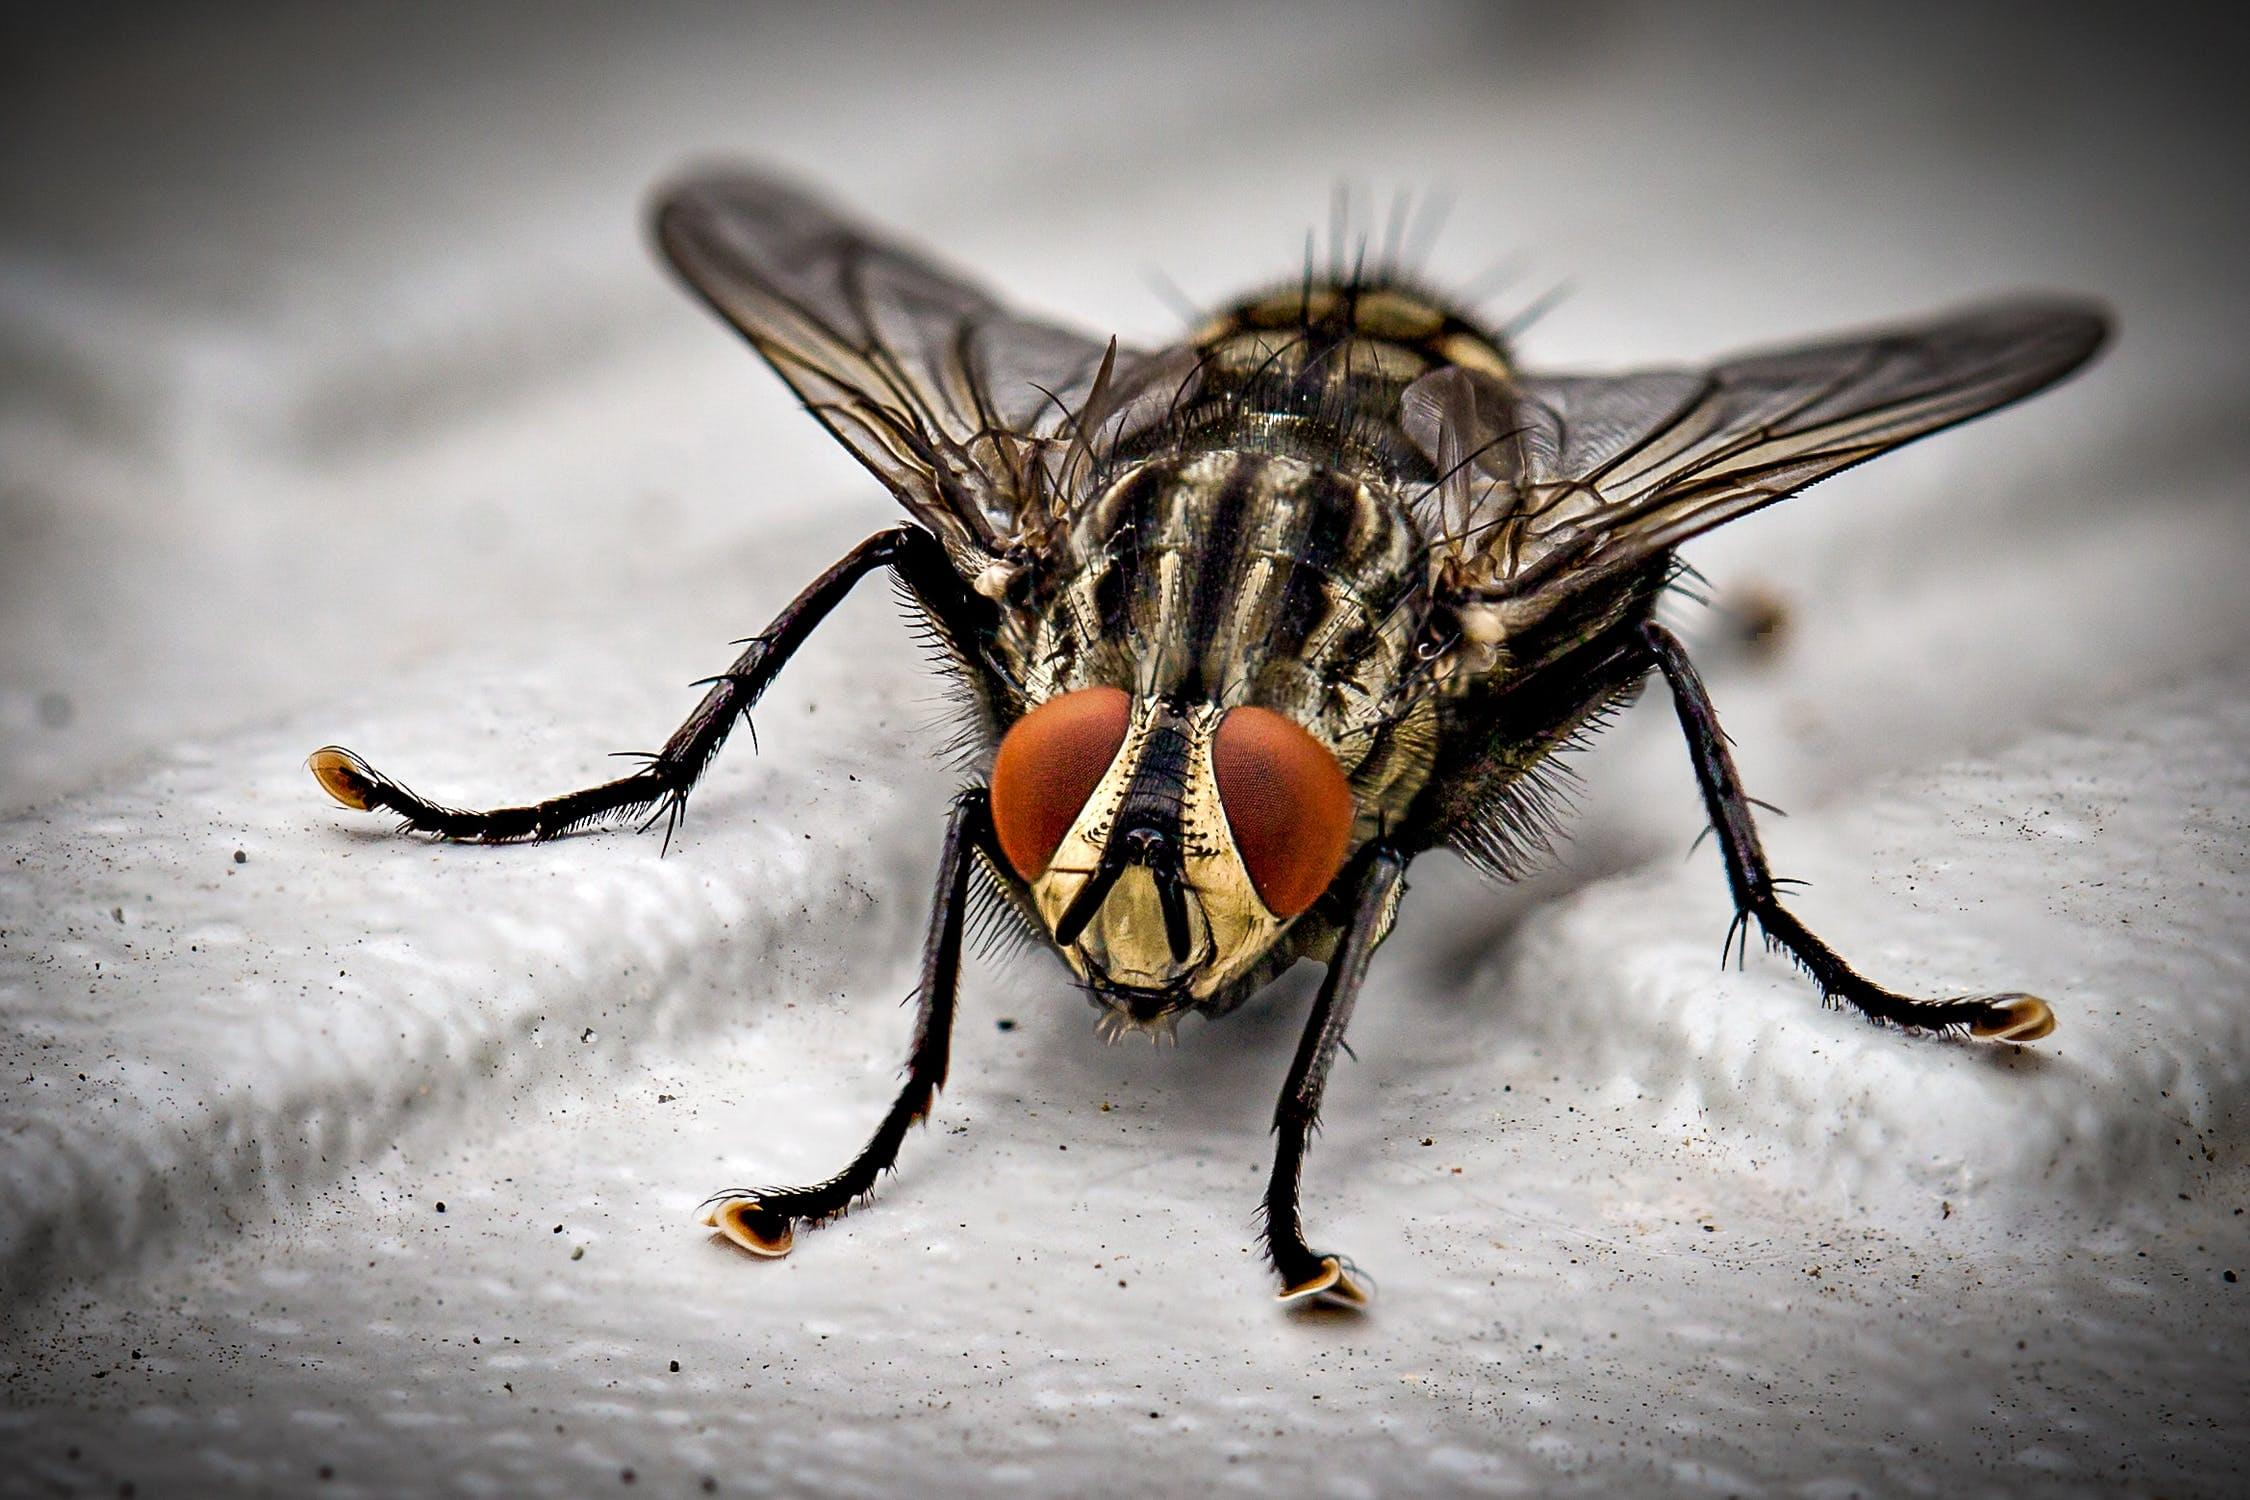 Man blew up his house trying to kill a fly